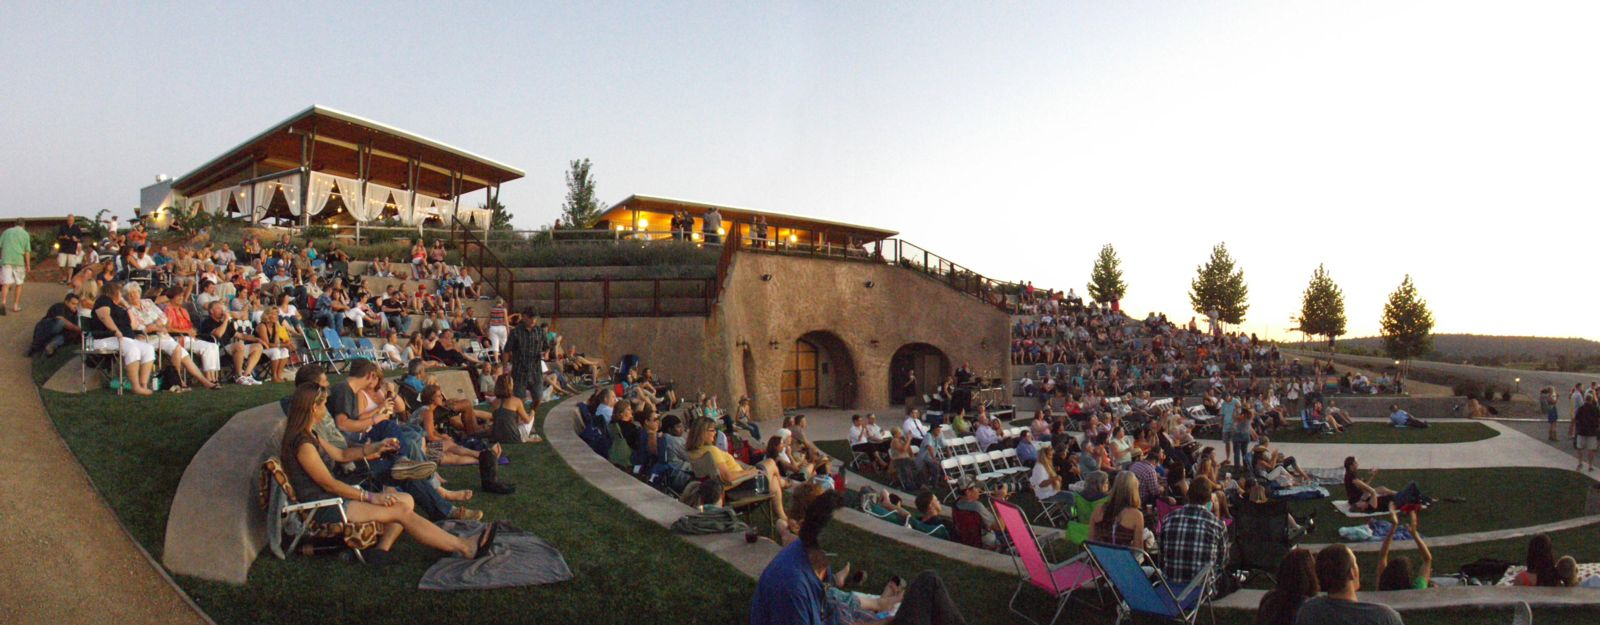 Helwig Winery Amphitheater